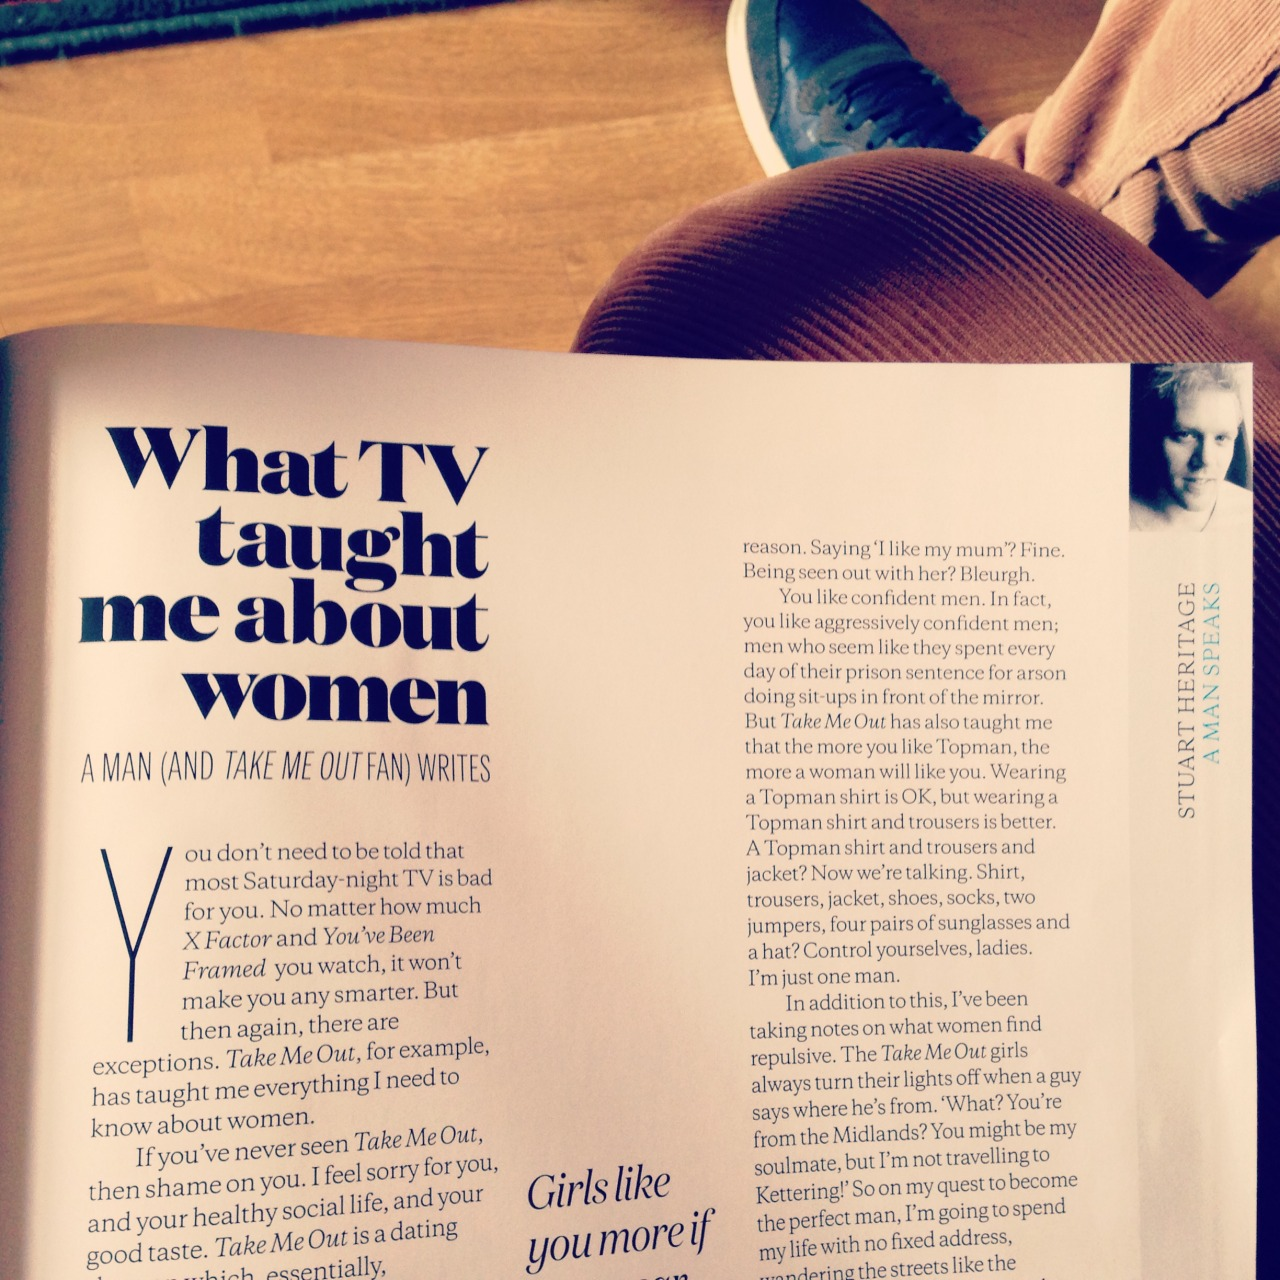 Look! I'm in this month's Elle magazine! I wrote an article about Take Me Out! You can read the headline, first quarter and third quarter in the picture! Or all of it if you buy the actual magazine! Like people did in the olden days! Elle!